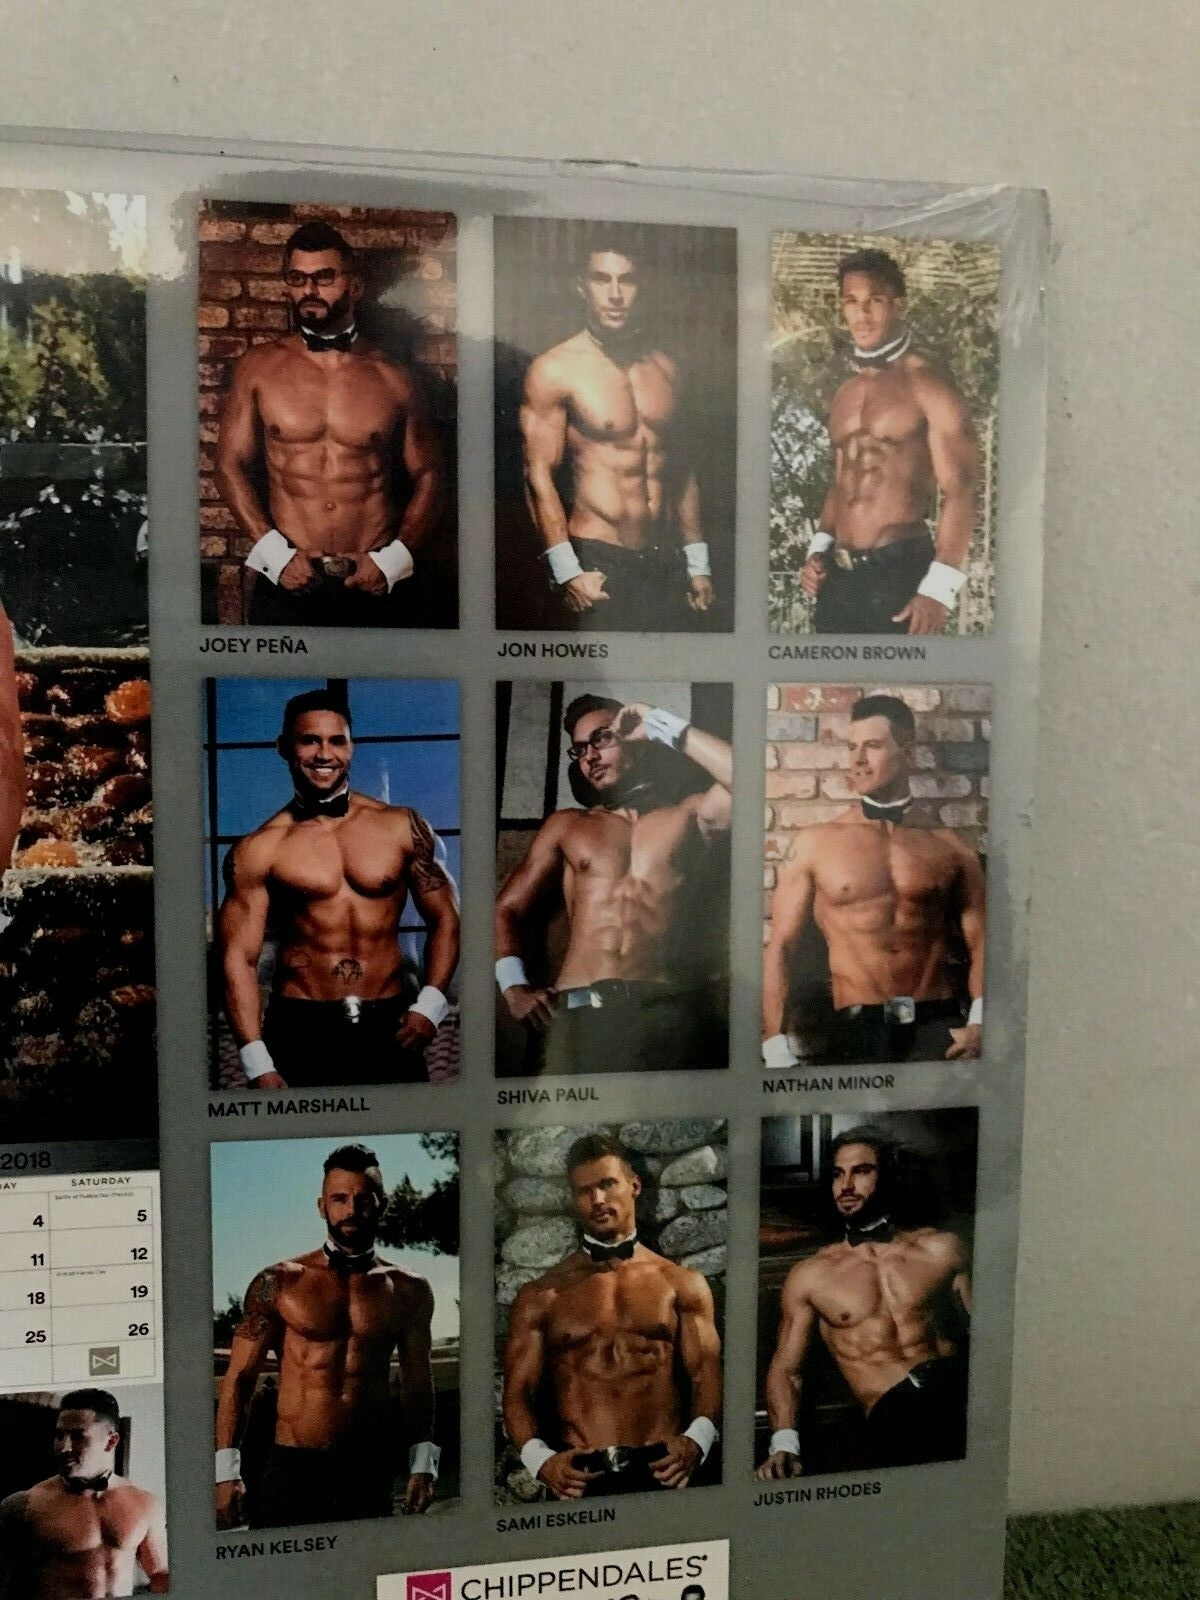 2018 Chippendales Wall Calendar, Hot Guysacco Brands